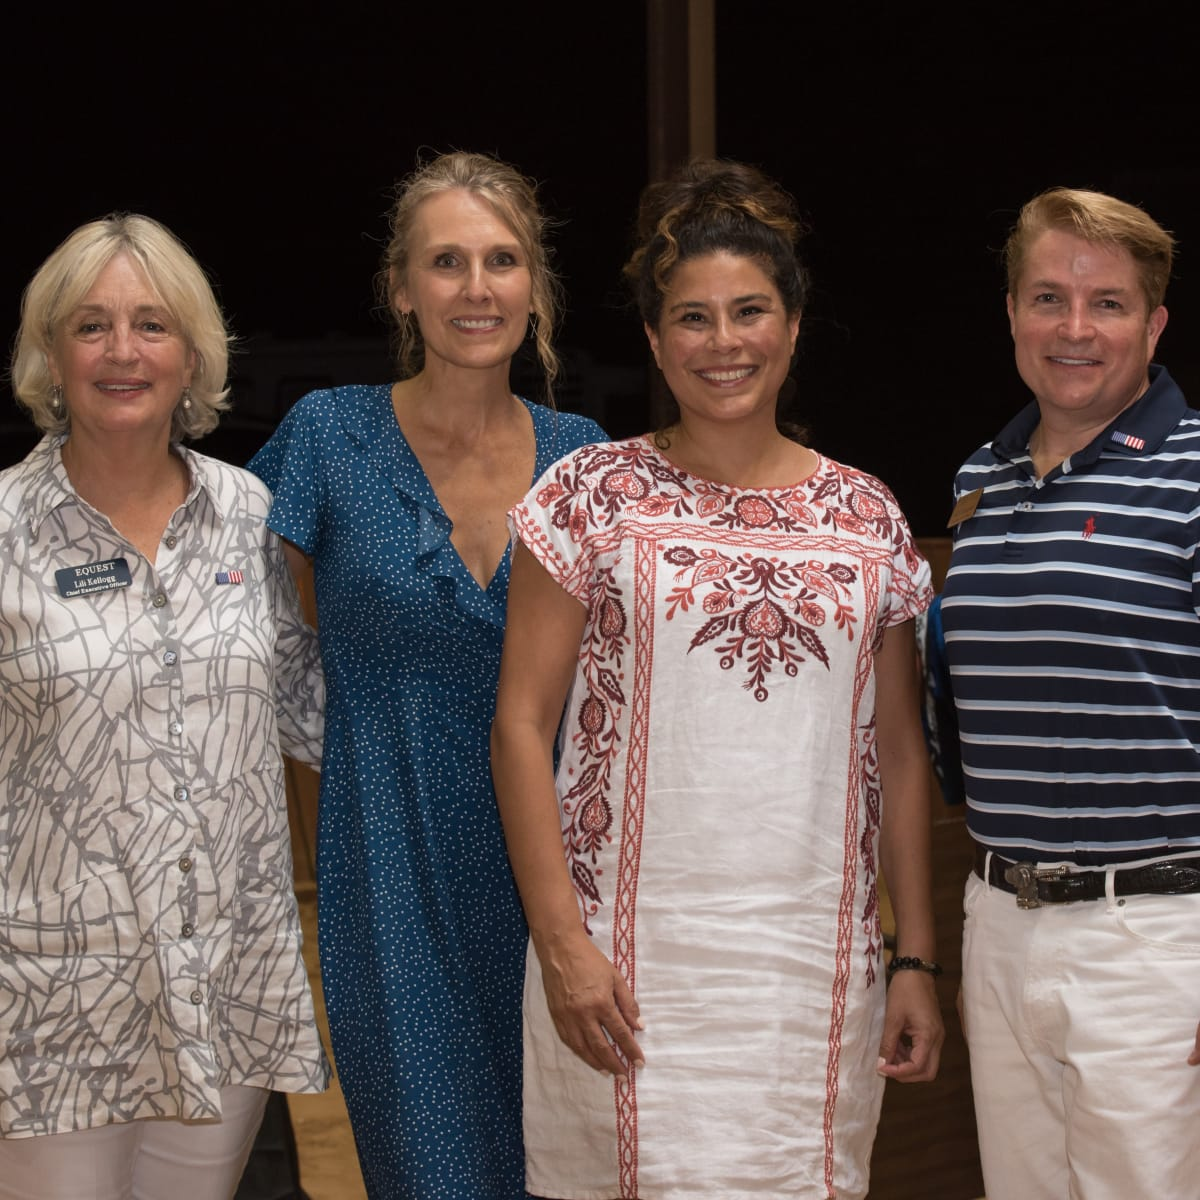 Lili Kellogg, Carolyn Anderson, Norma Jean Schaltenbrand, Andy Steingasser, Equest Boots and Salutes